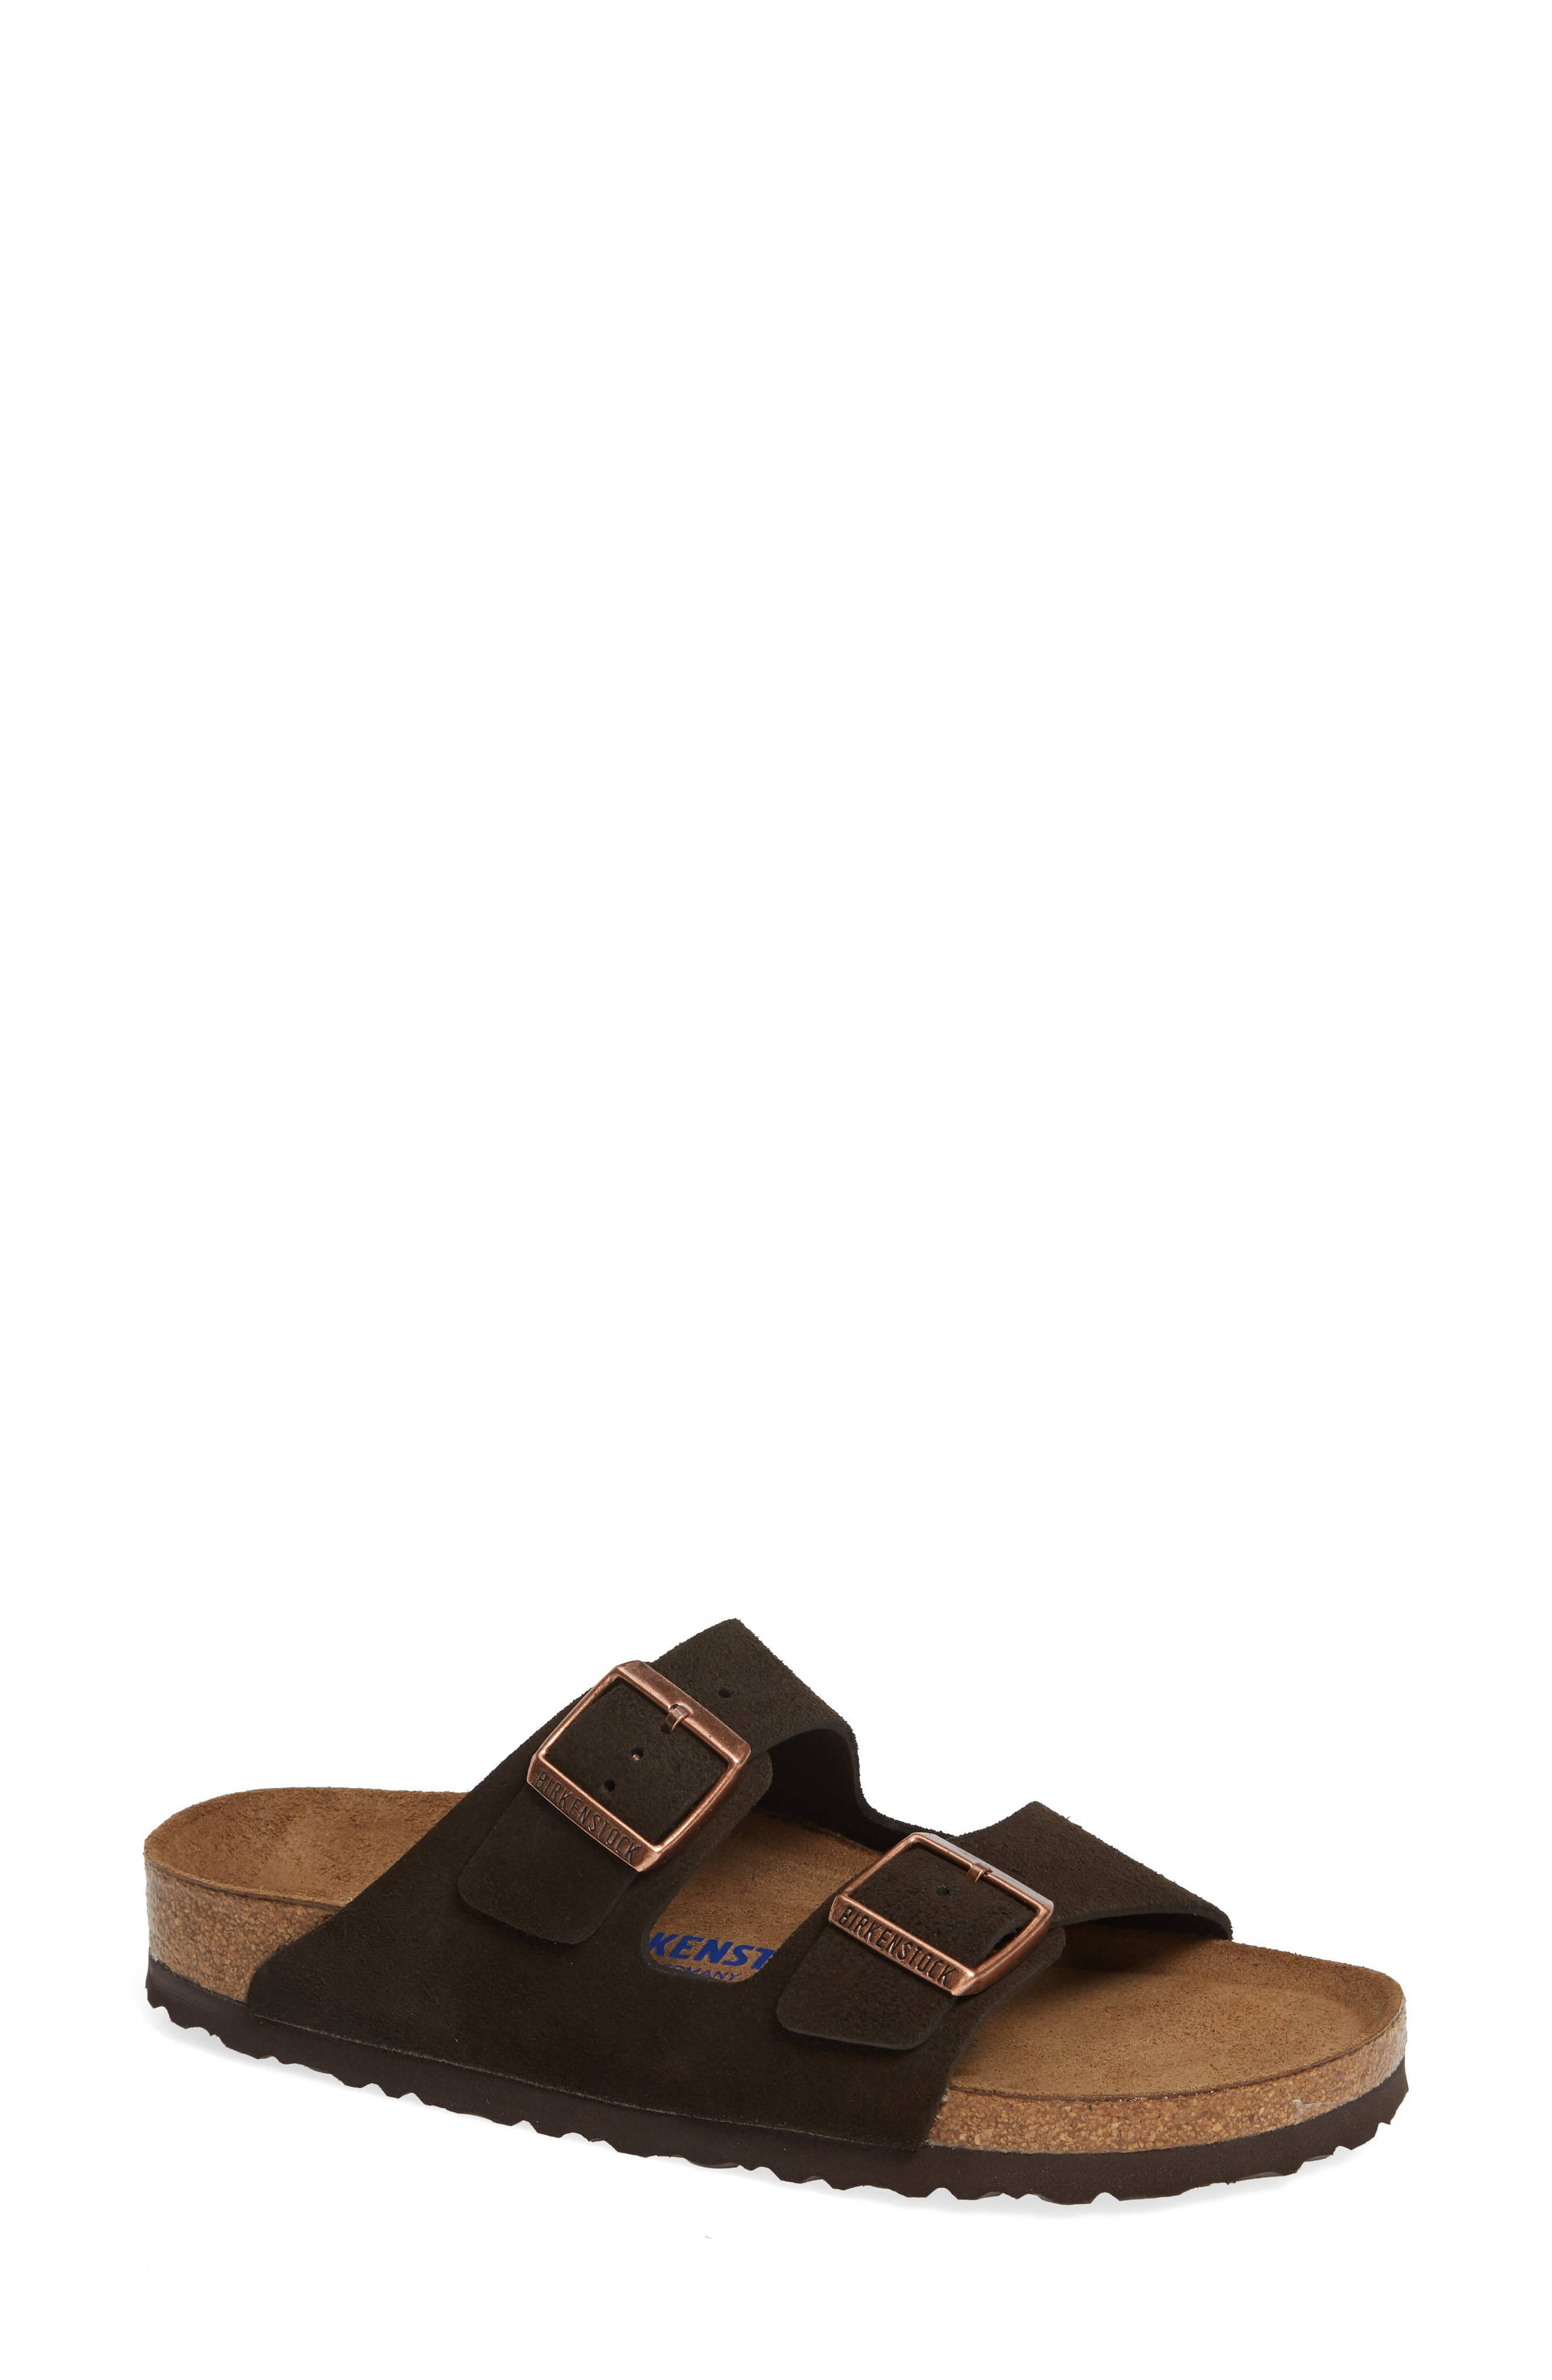 BIRKENSTOCK, 'Arizona' Soft Footbed Suede Sandal, Main thumbnail 1, color, MOCHA SUEDE